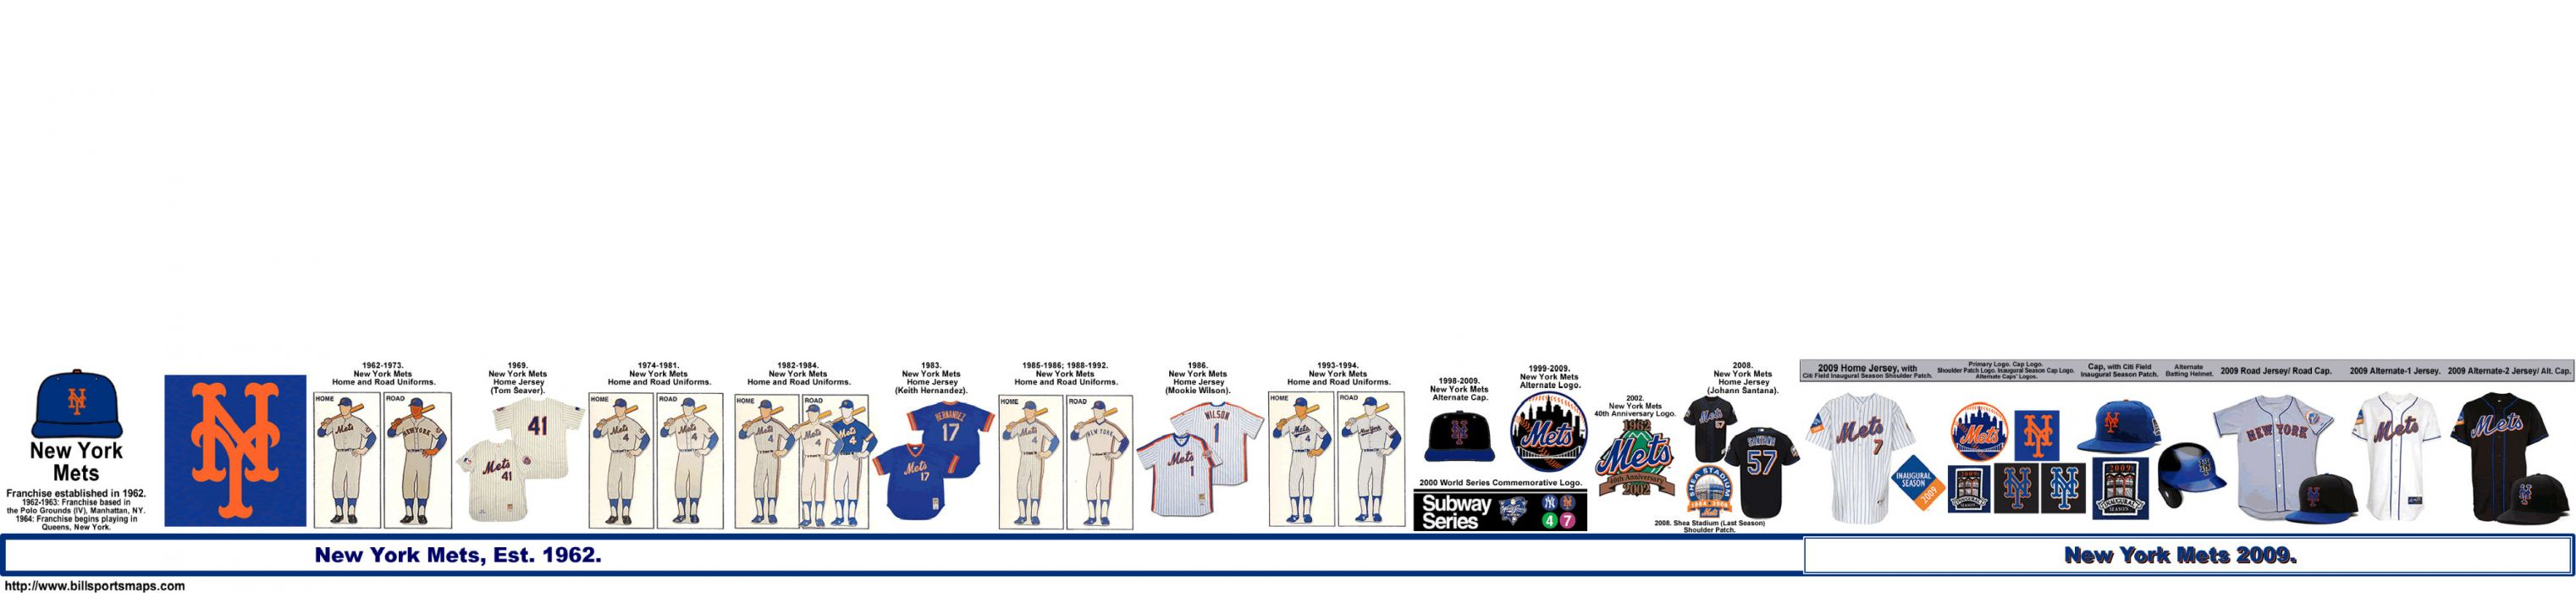 NEW YORK METS baseball mlb (20) wallpaper